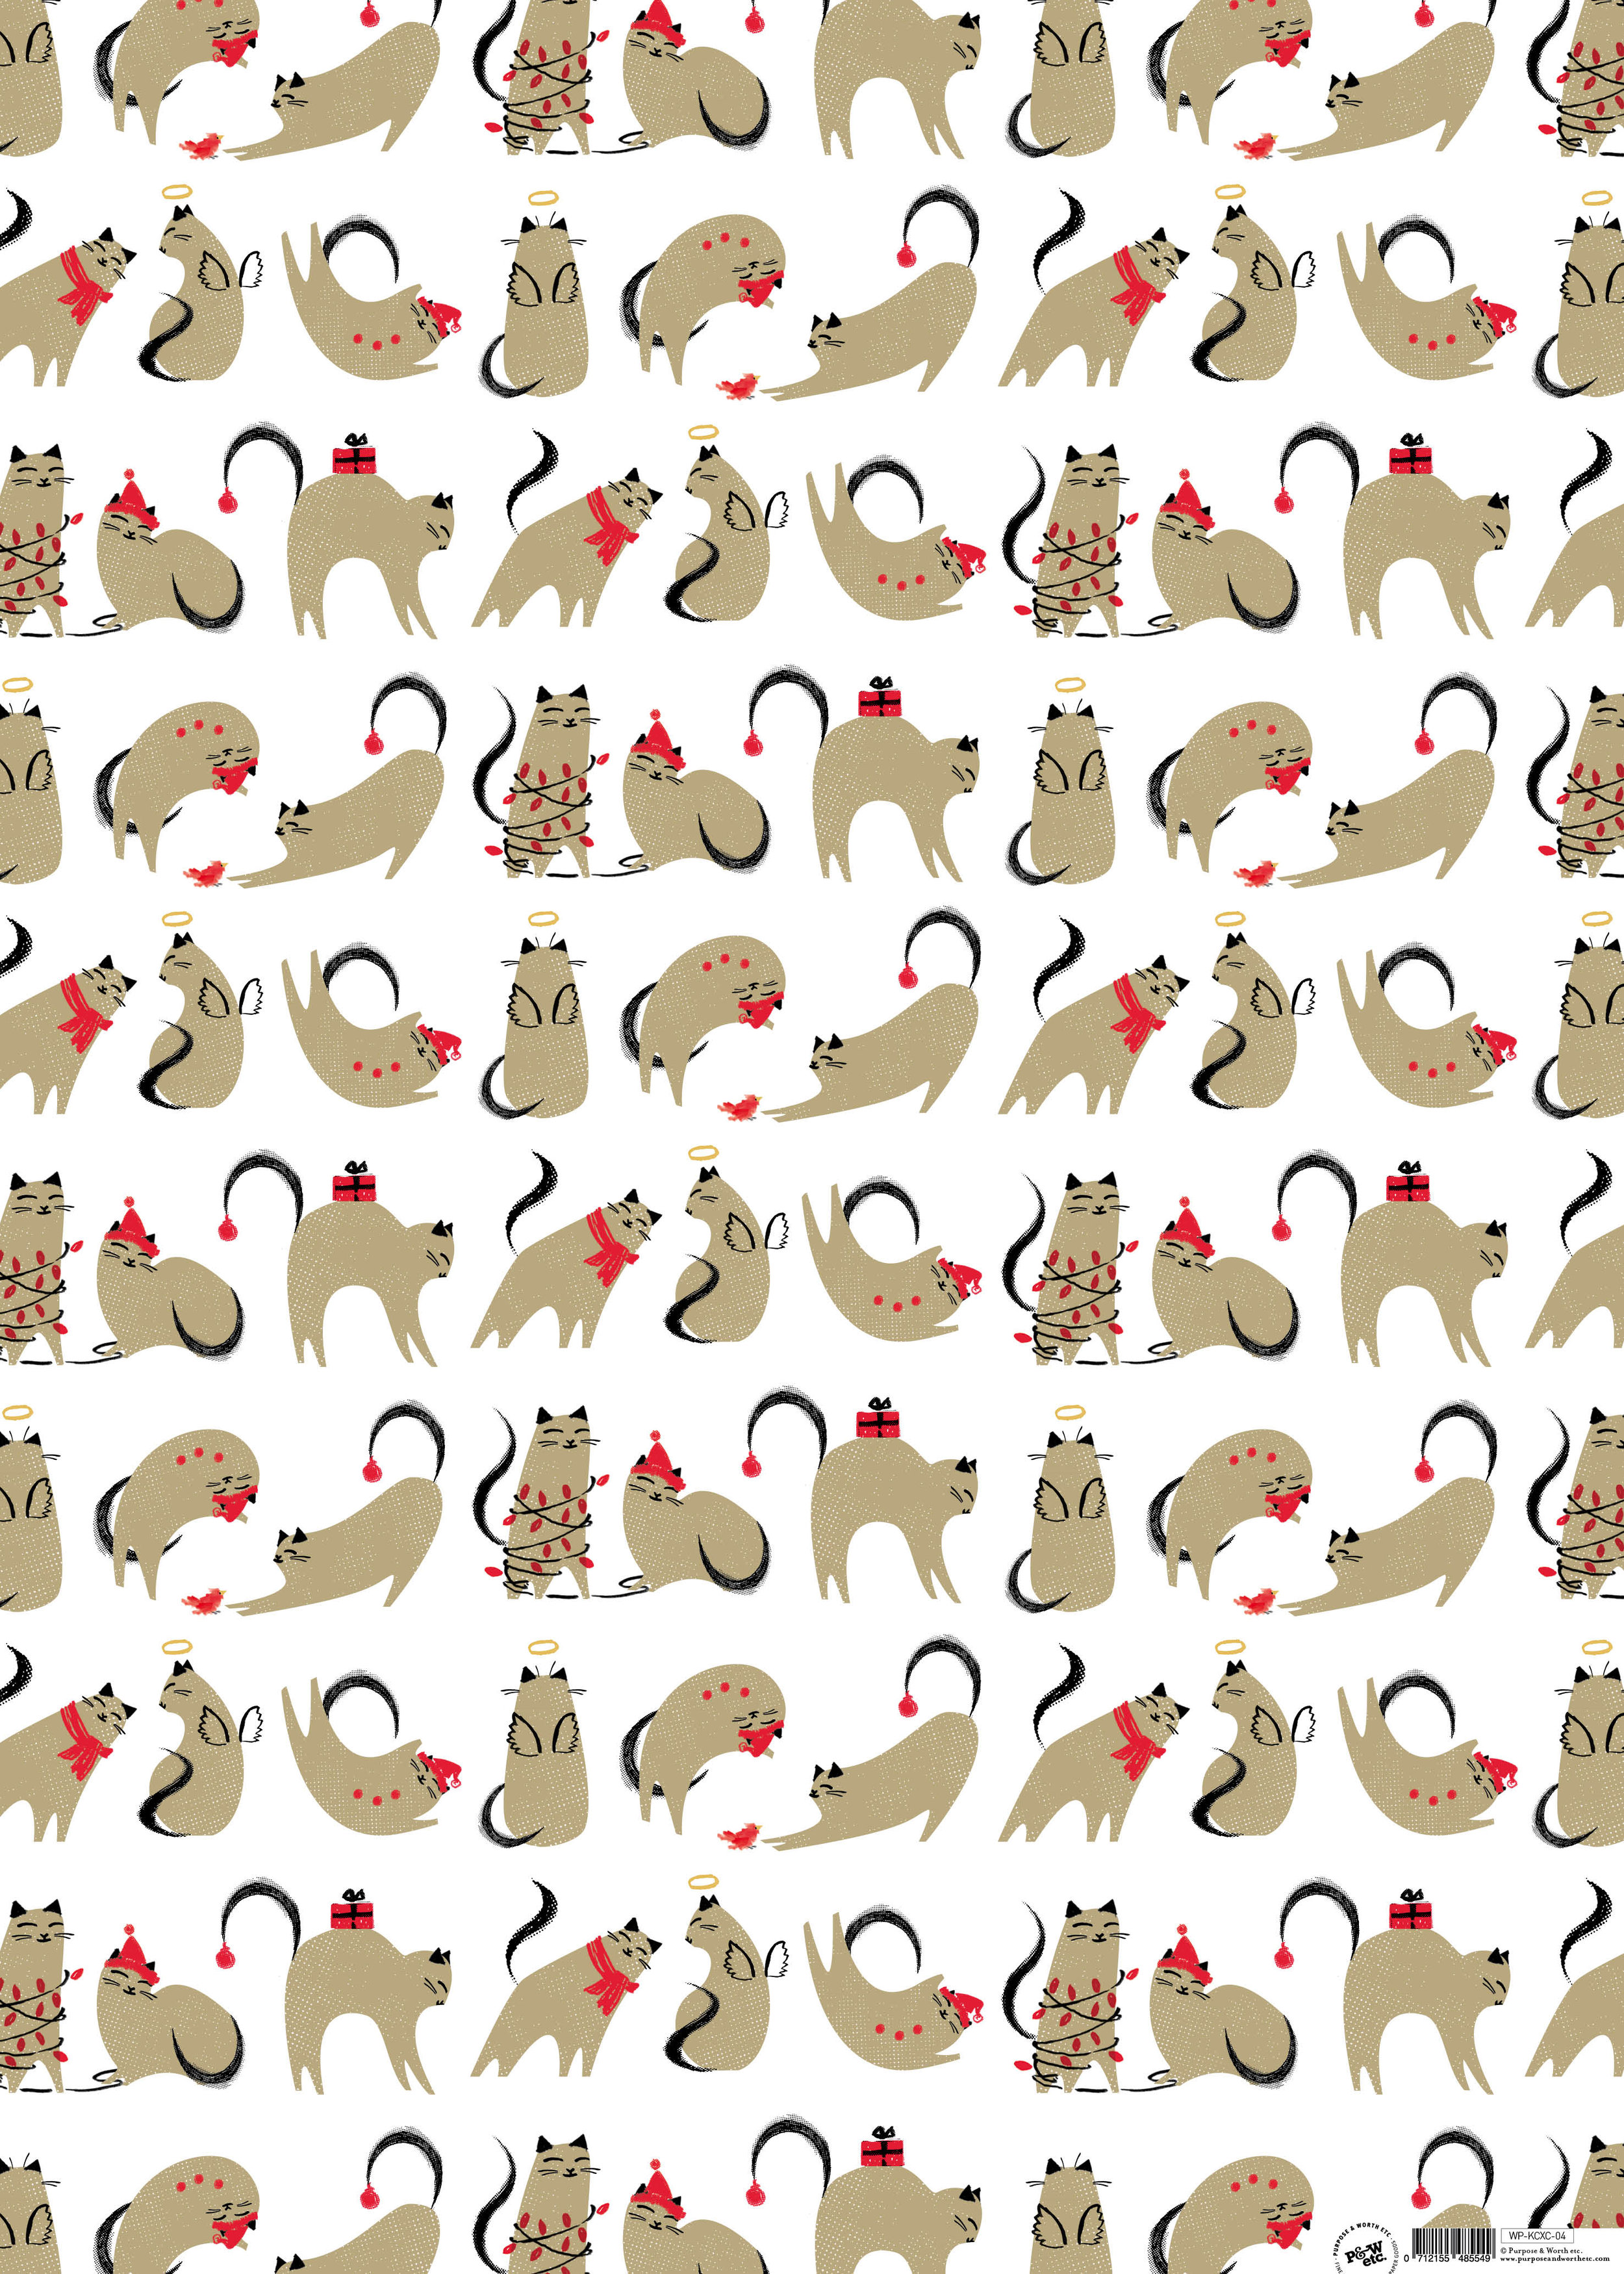 Cat christmas wrapping paper: KCXC_04, matching cards available